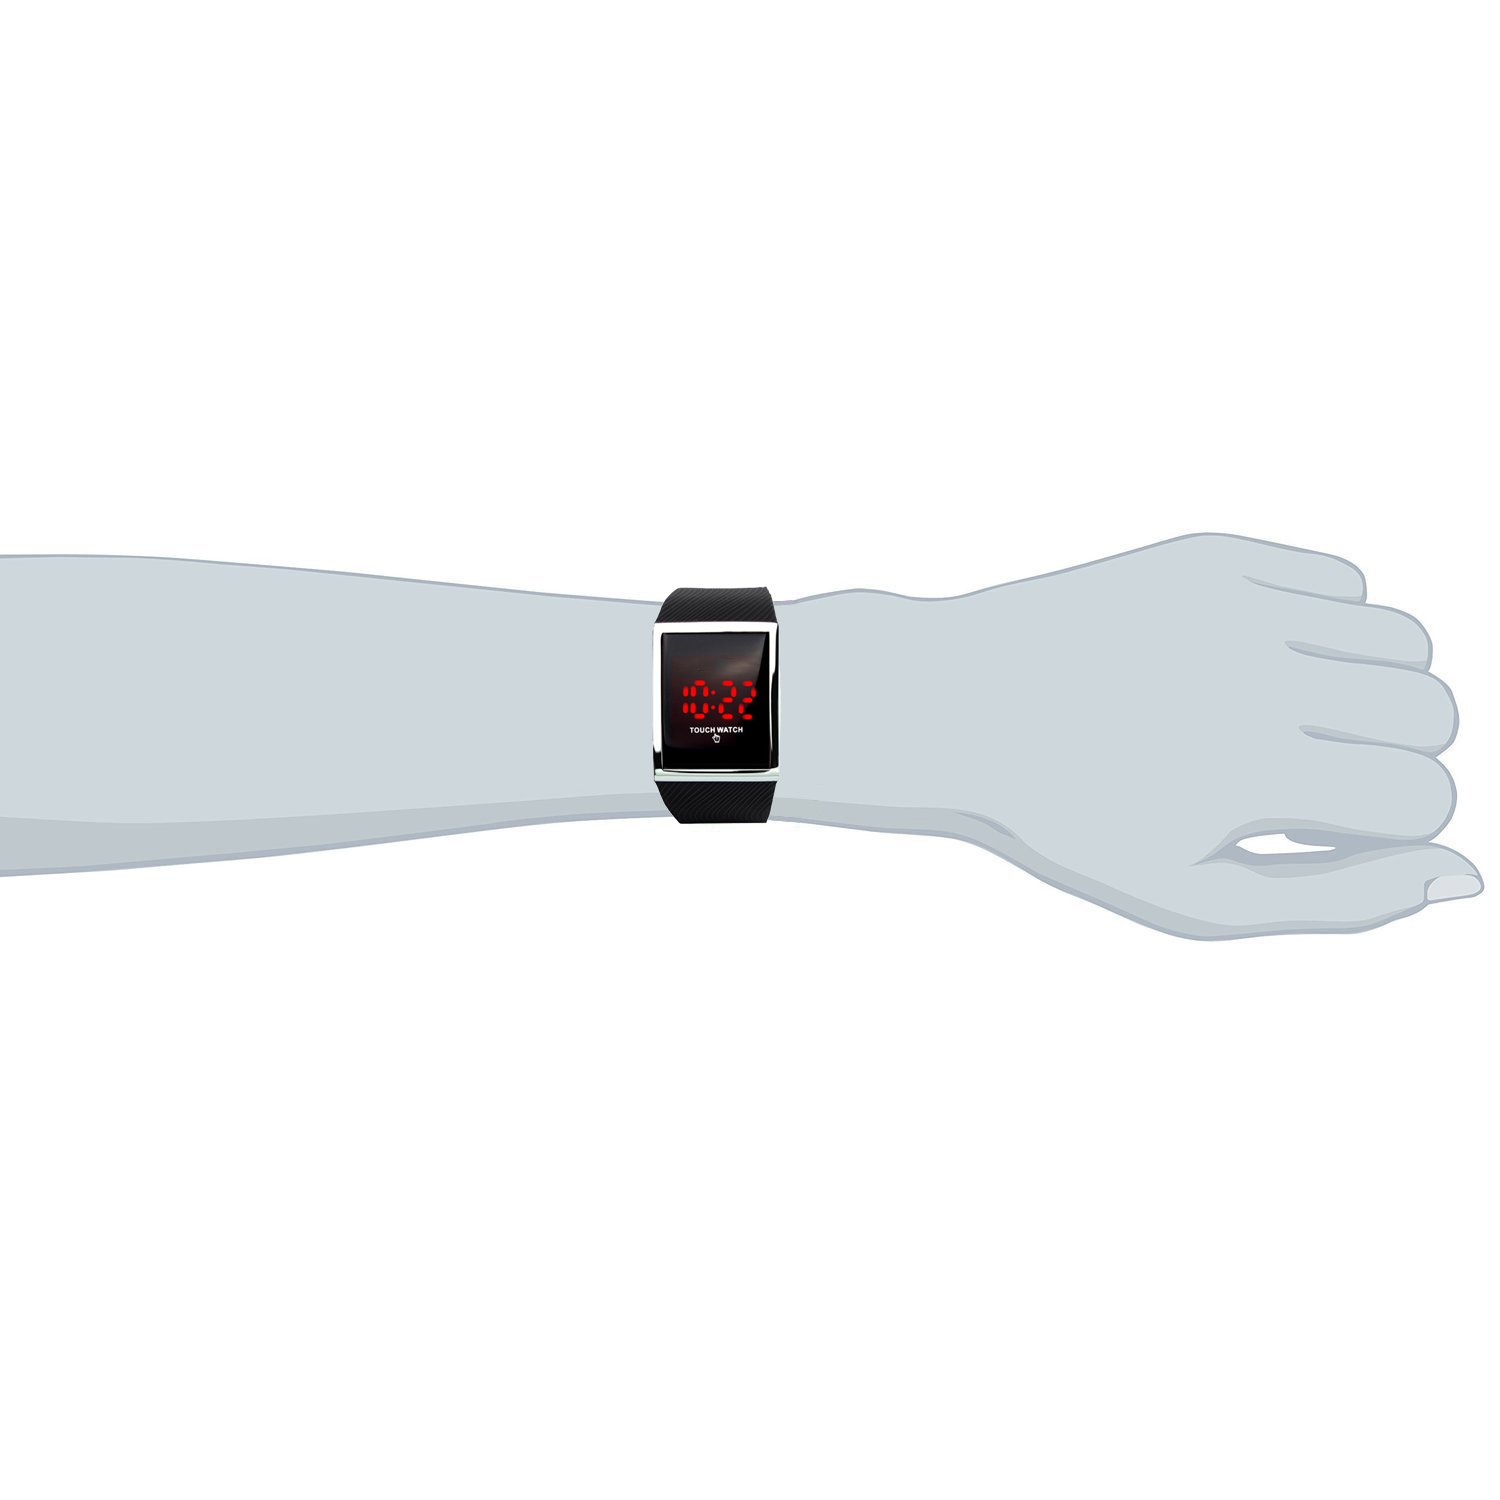 Touch Screen Outdoor Sports Black Watch with LED, Digital for Boys Girls, Above 10 Years Old Kids by FIZILI (Image #2)